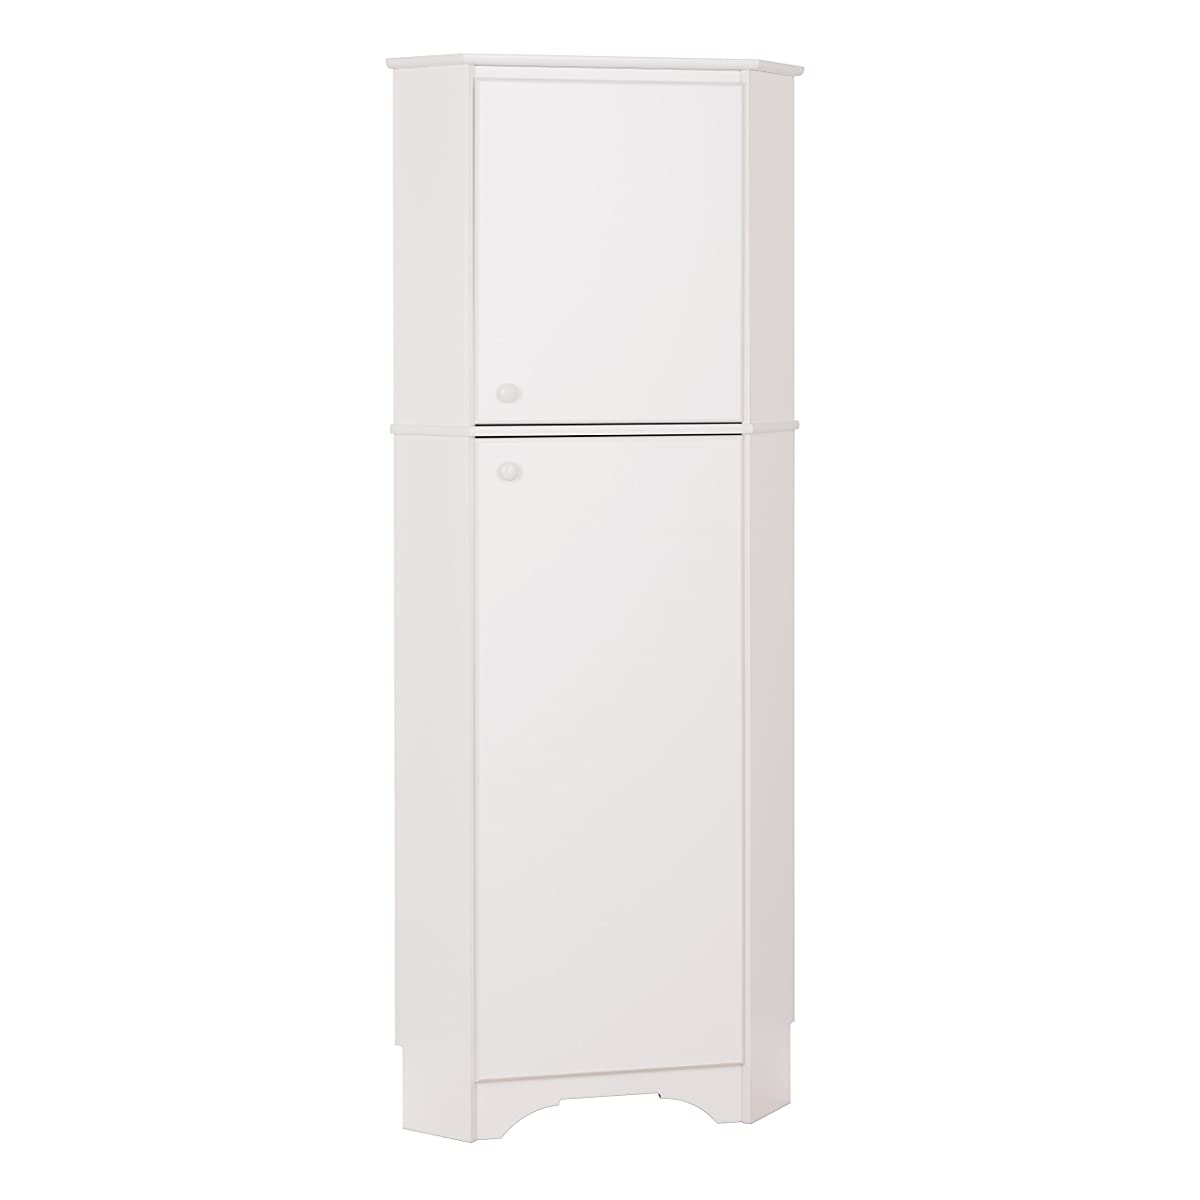 Prepac Tall 2 Door Corner Storage Cabinet in Elite White